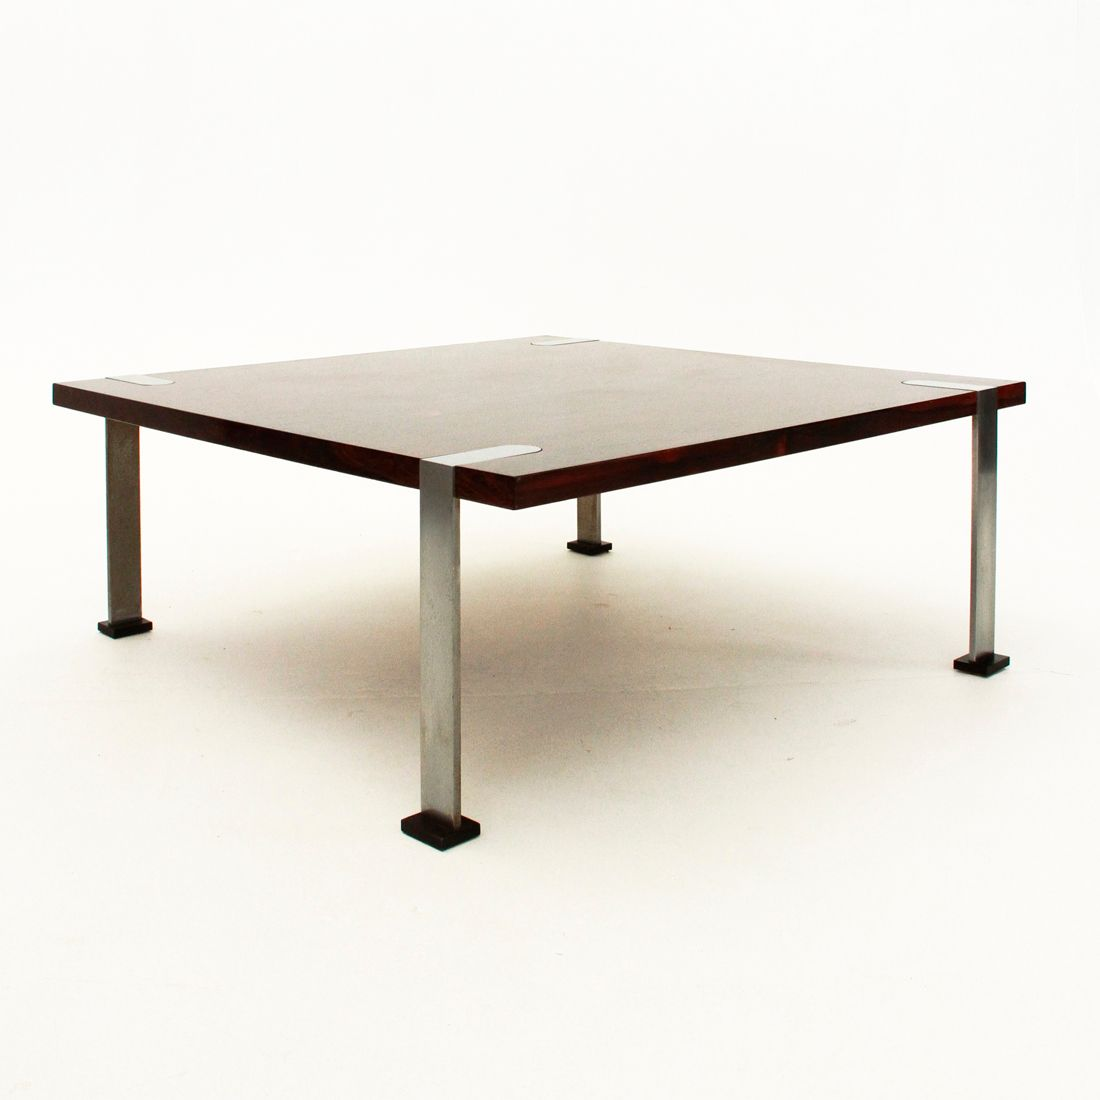 Italian square coffee table 1960s for sale at pamono for Italian coffee table